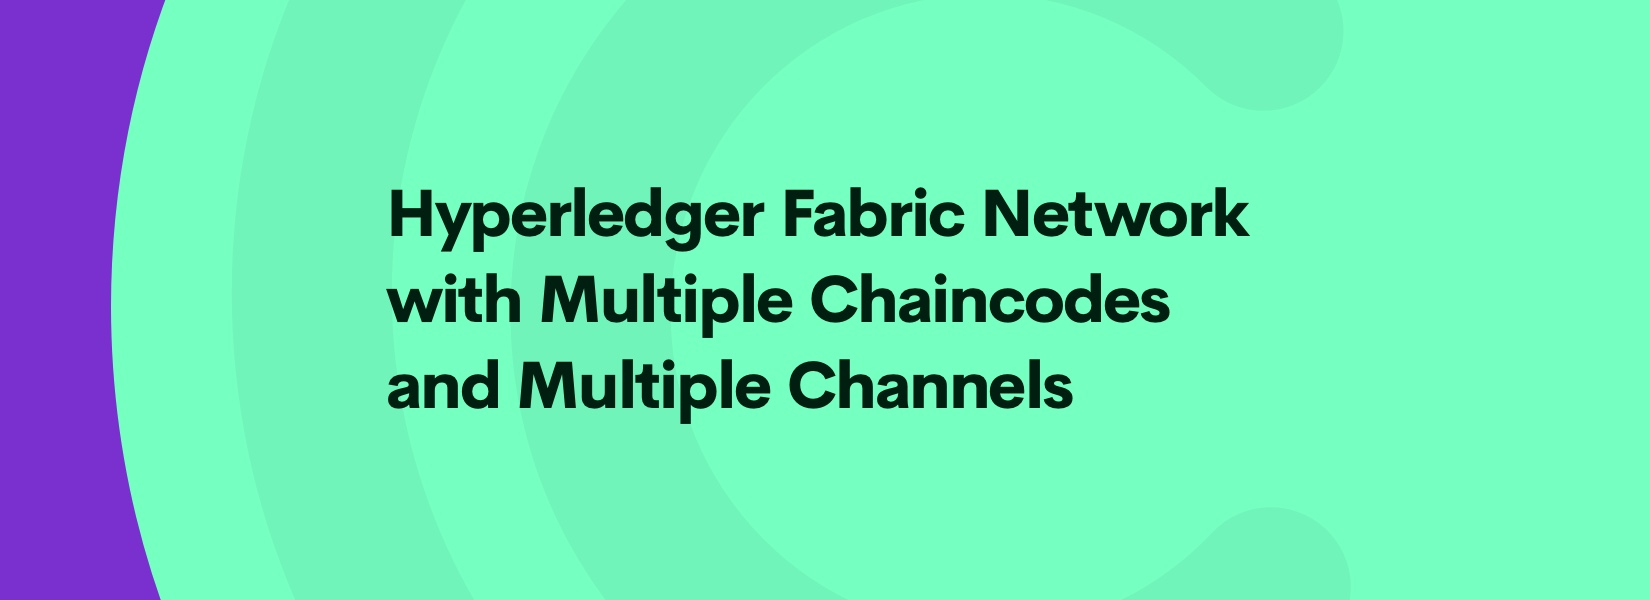 Setting up a Hyperledger Fabric Network with Multiple Chaincodes and Multiple Channels